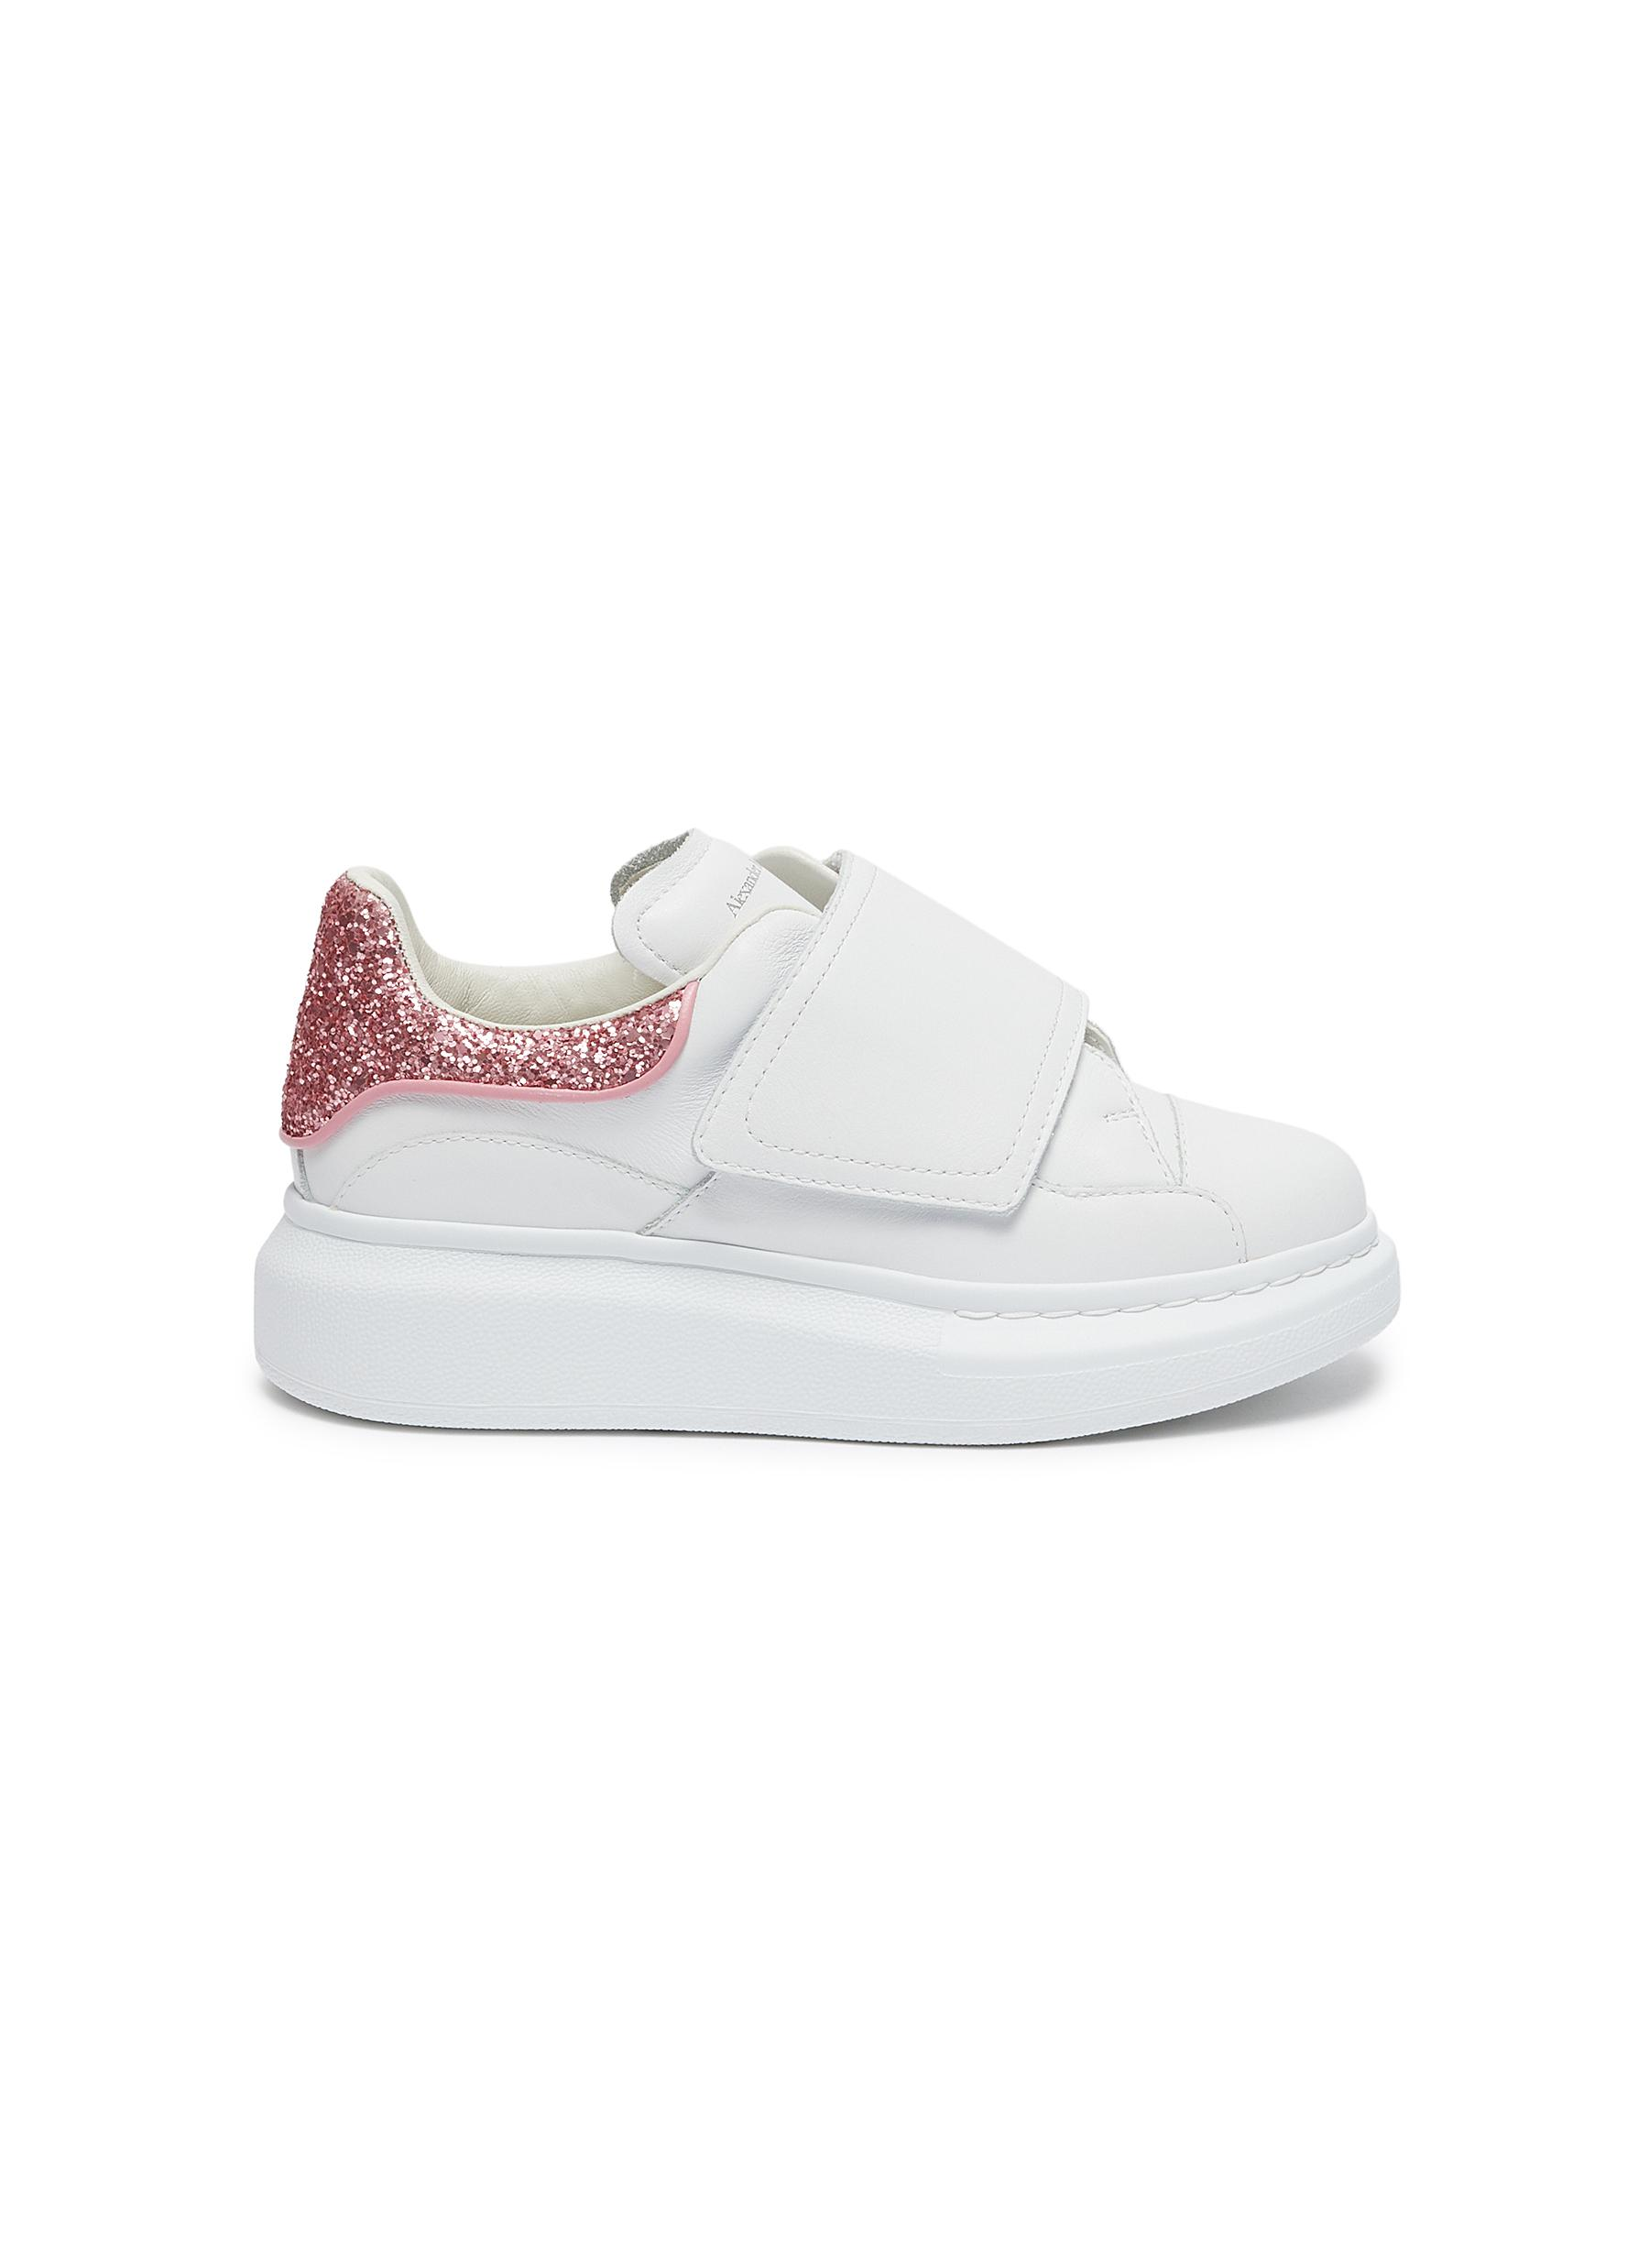 'Molly' contrast heel tab velcro oversized sole Todder and Kids sneakers